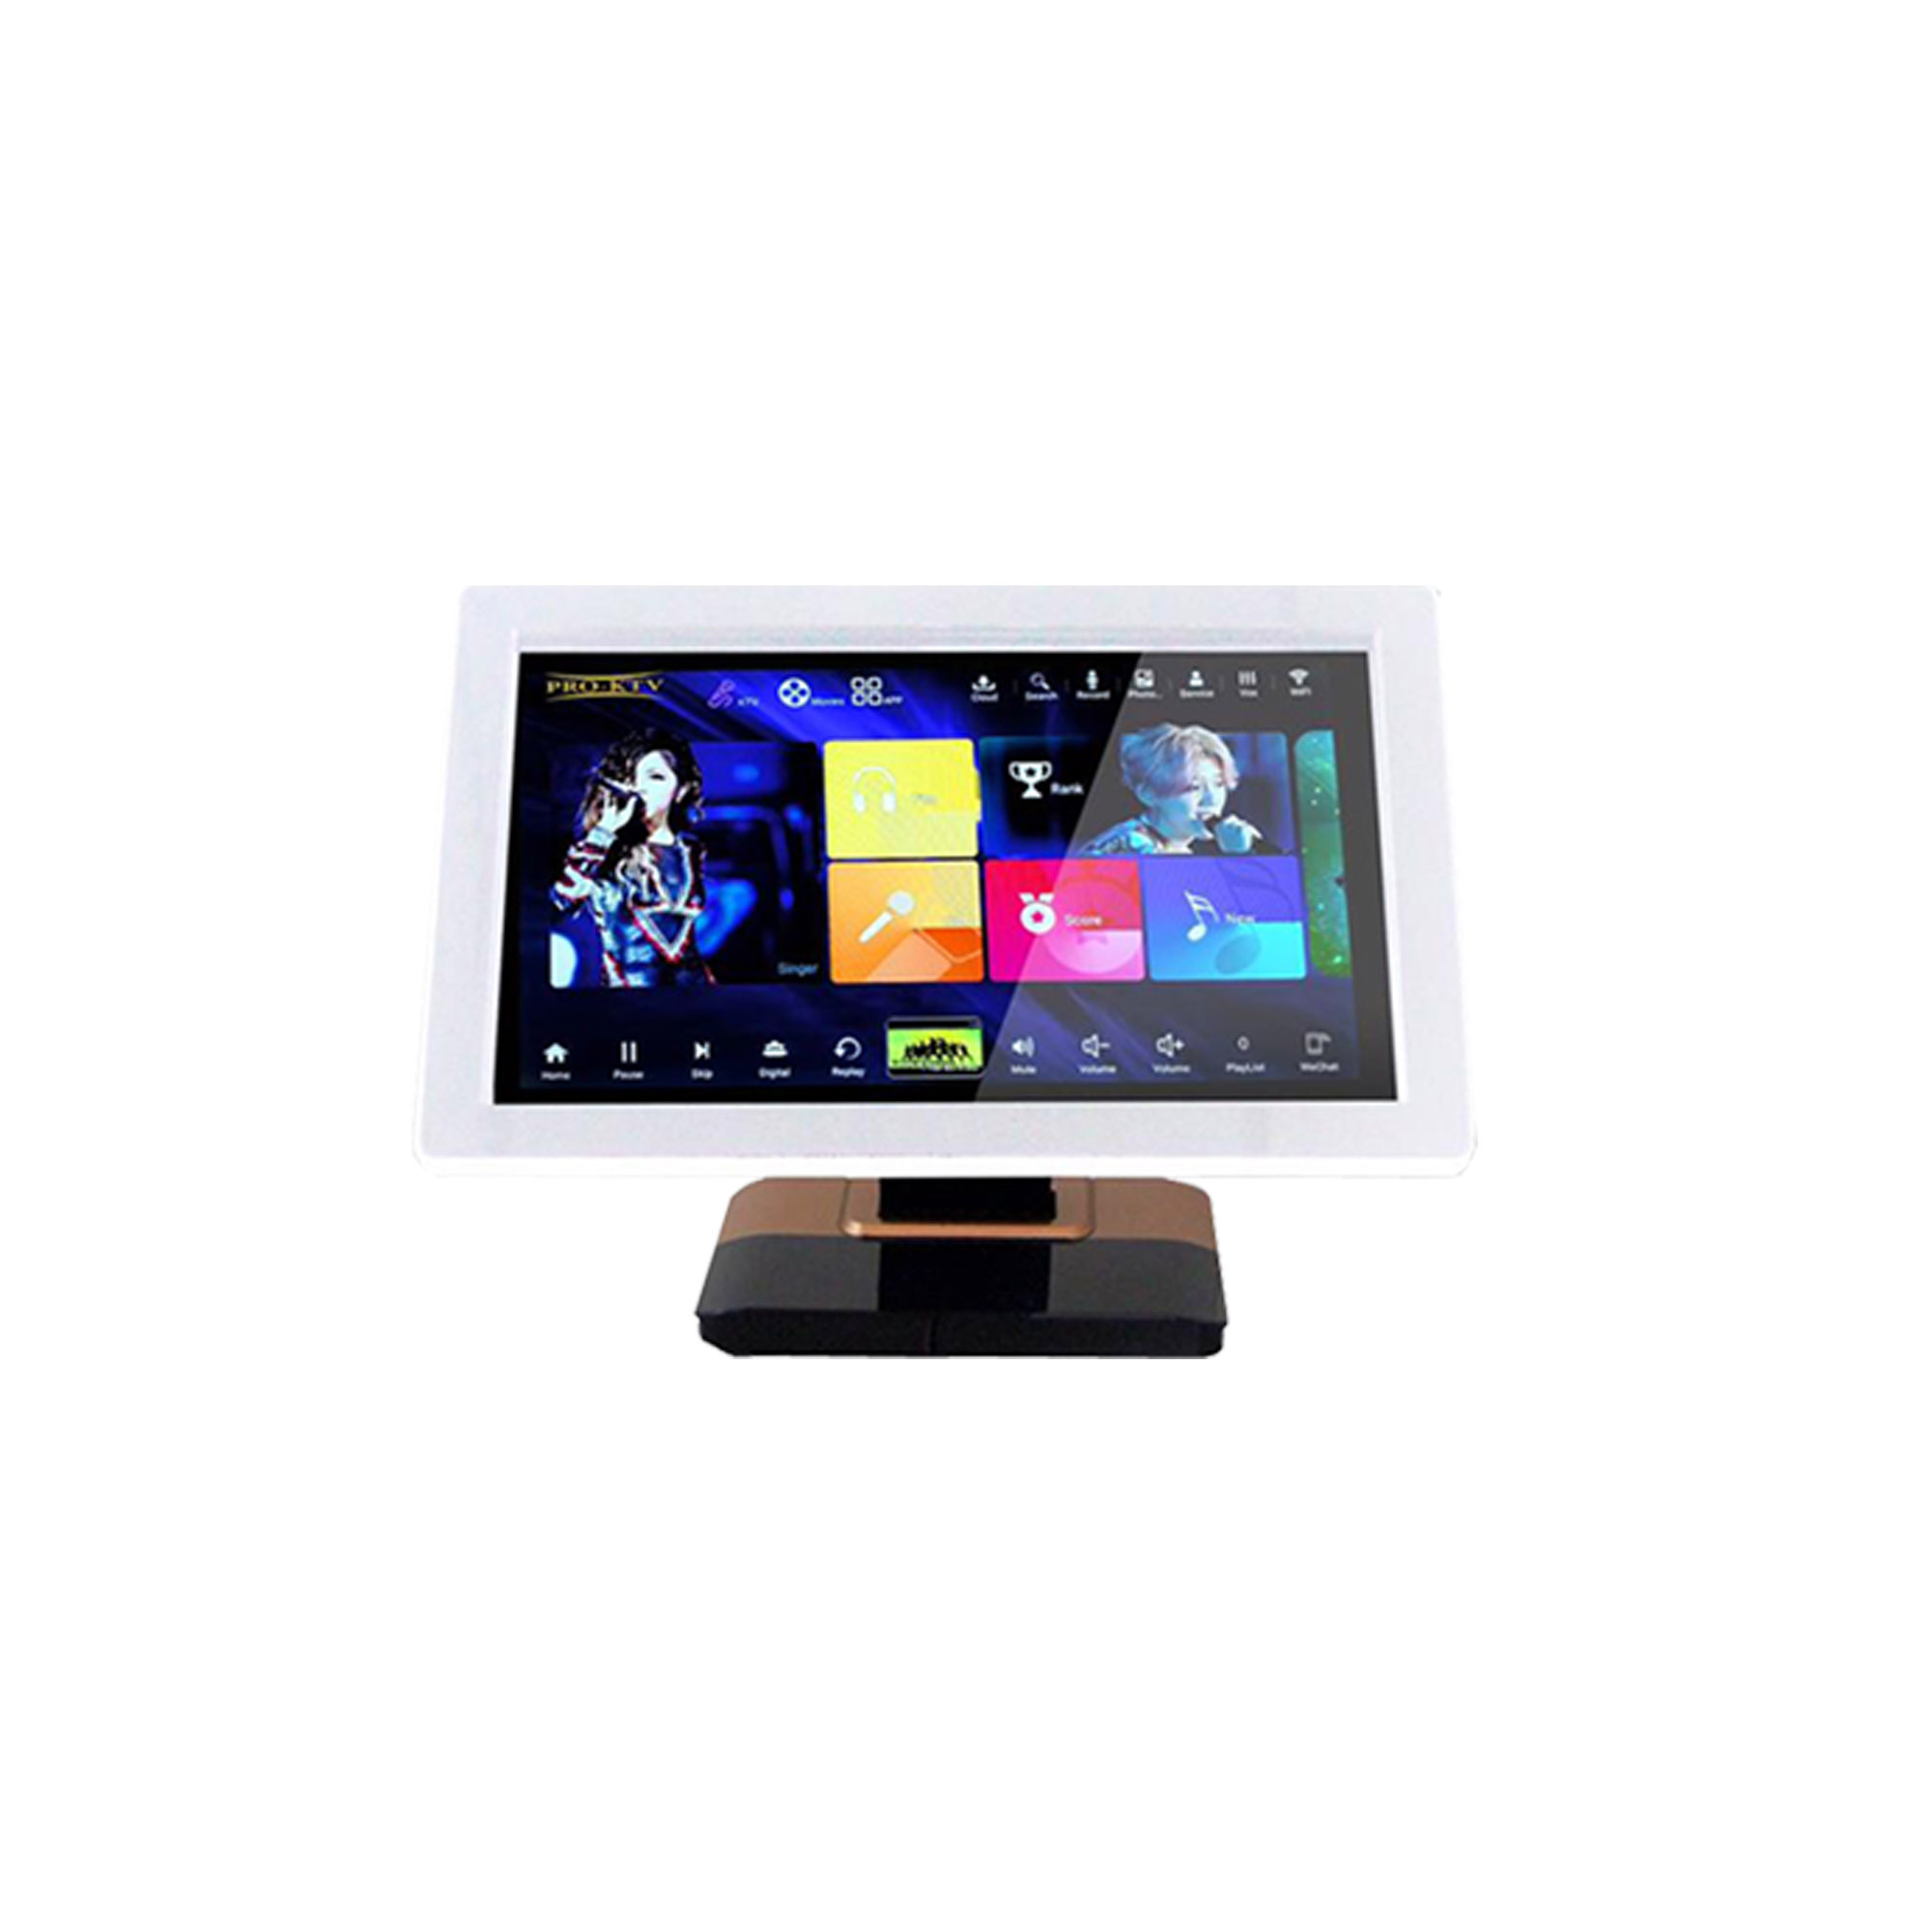 "PRO KTV 21.5"" All in One Karaoke On Demand Player with Desktop Stand (3TB)"